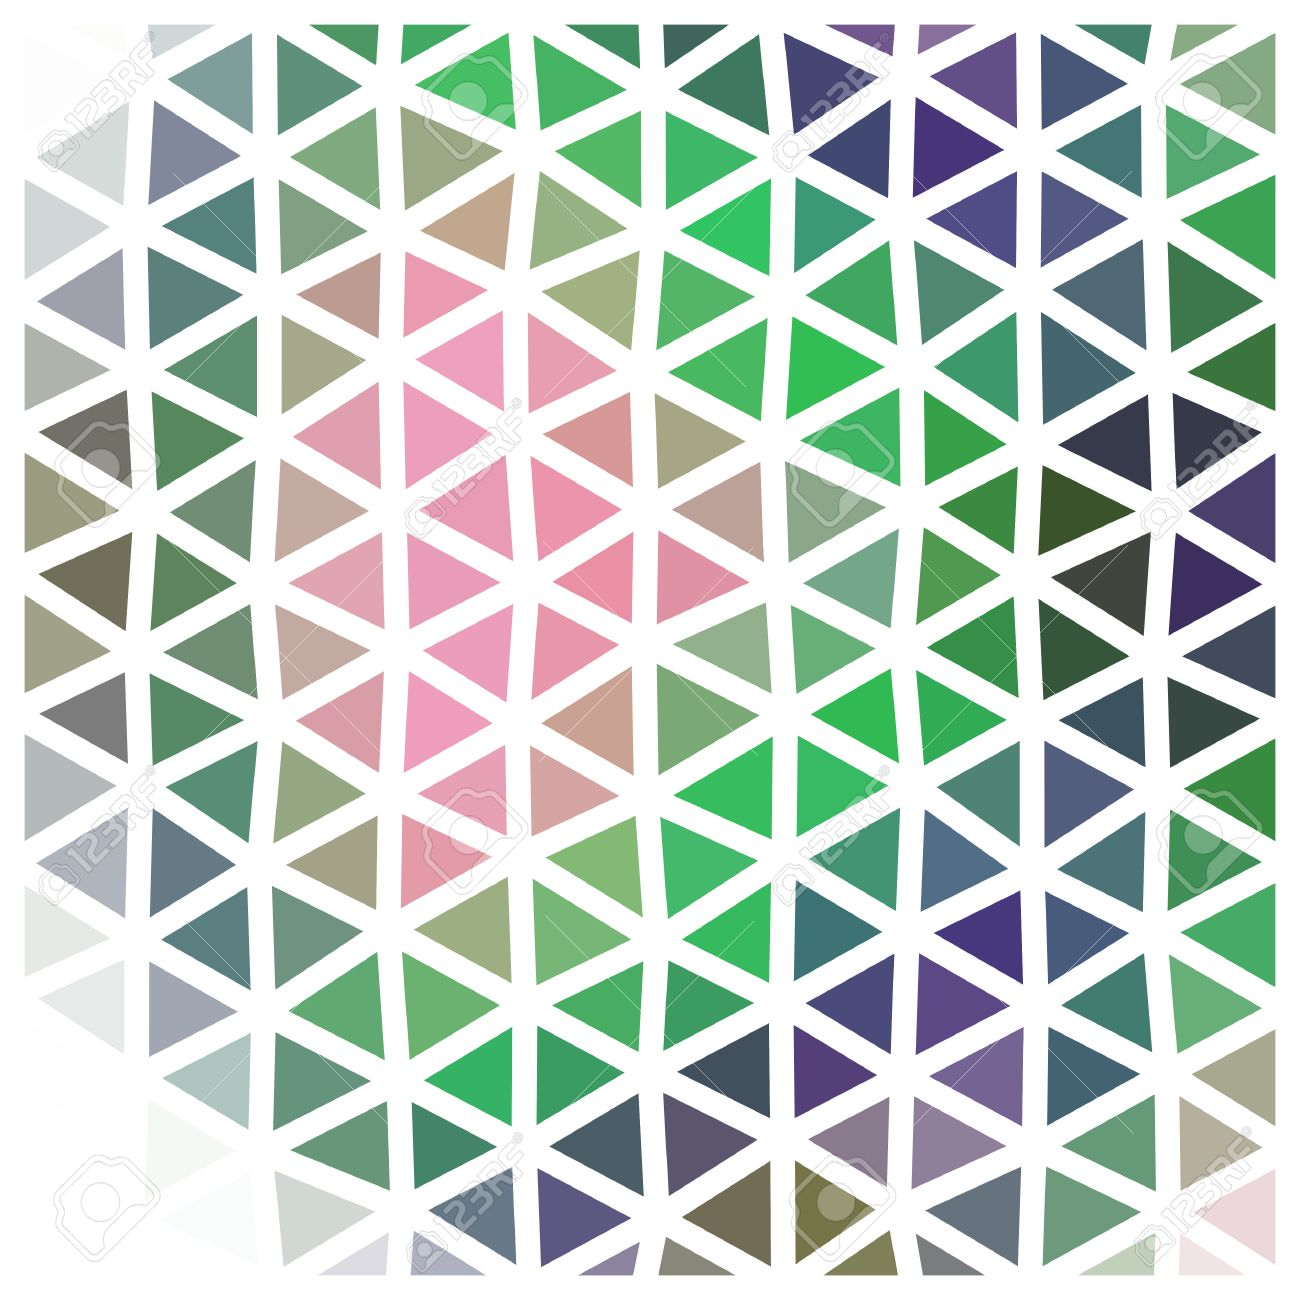 Abstract Triangular Low Poly Pattern With White Grid